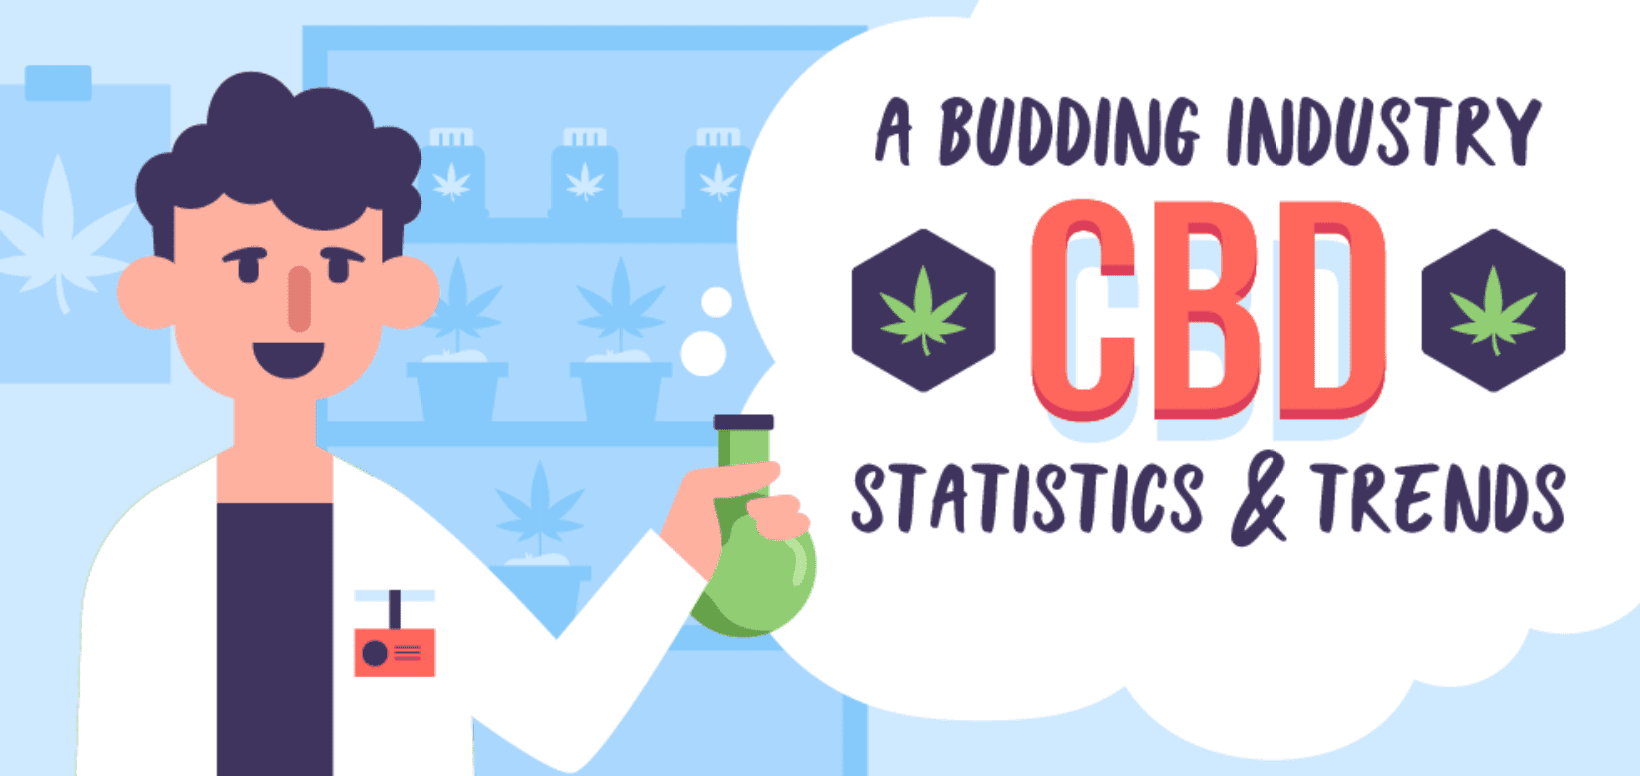 A Budding Industry: CBD Statistics and Trends; graphic courtesy of author.